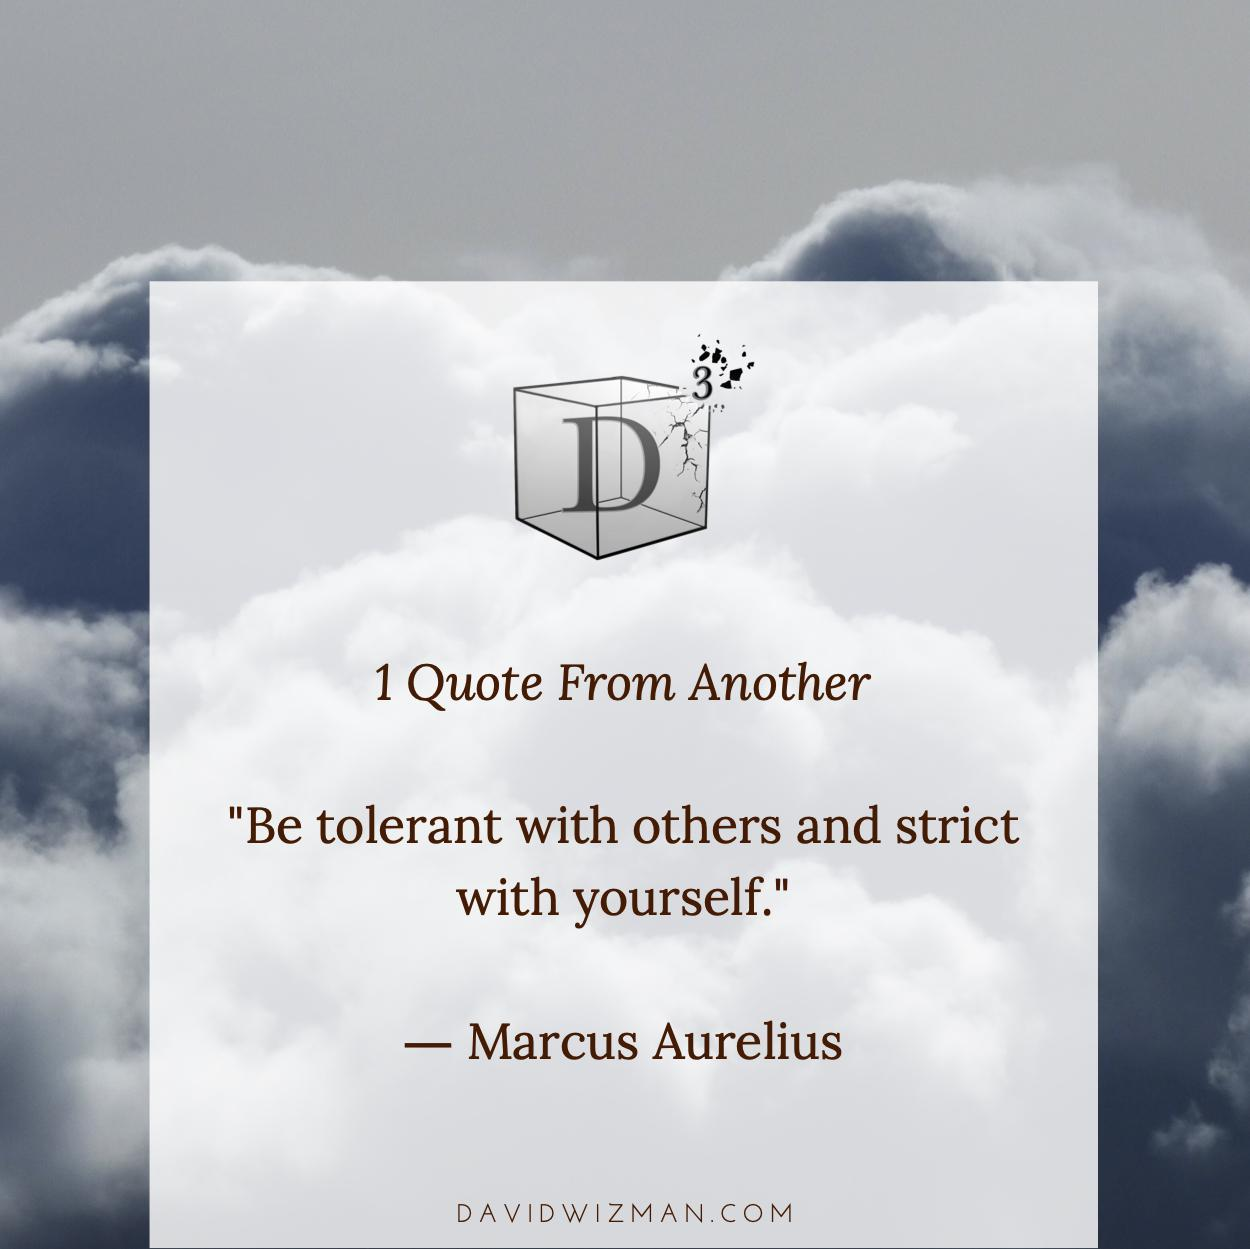 """1 Quote From Another """"Be Tolerant With Others And Strict With Yourself."""" — Marcus Aurelius DAVIDWIZMAN.COM https://inspirational.ly"""